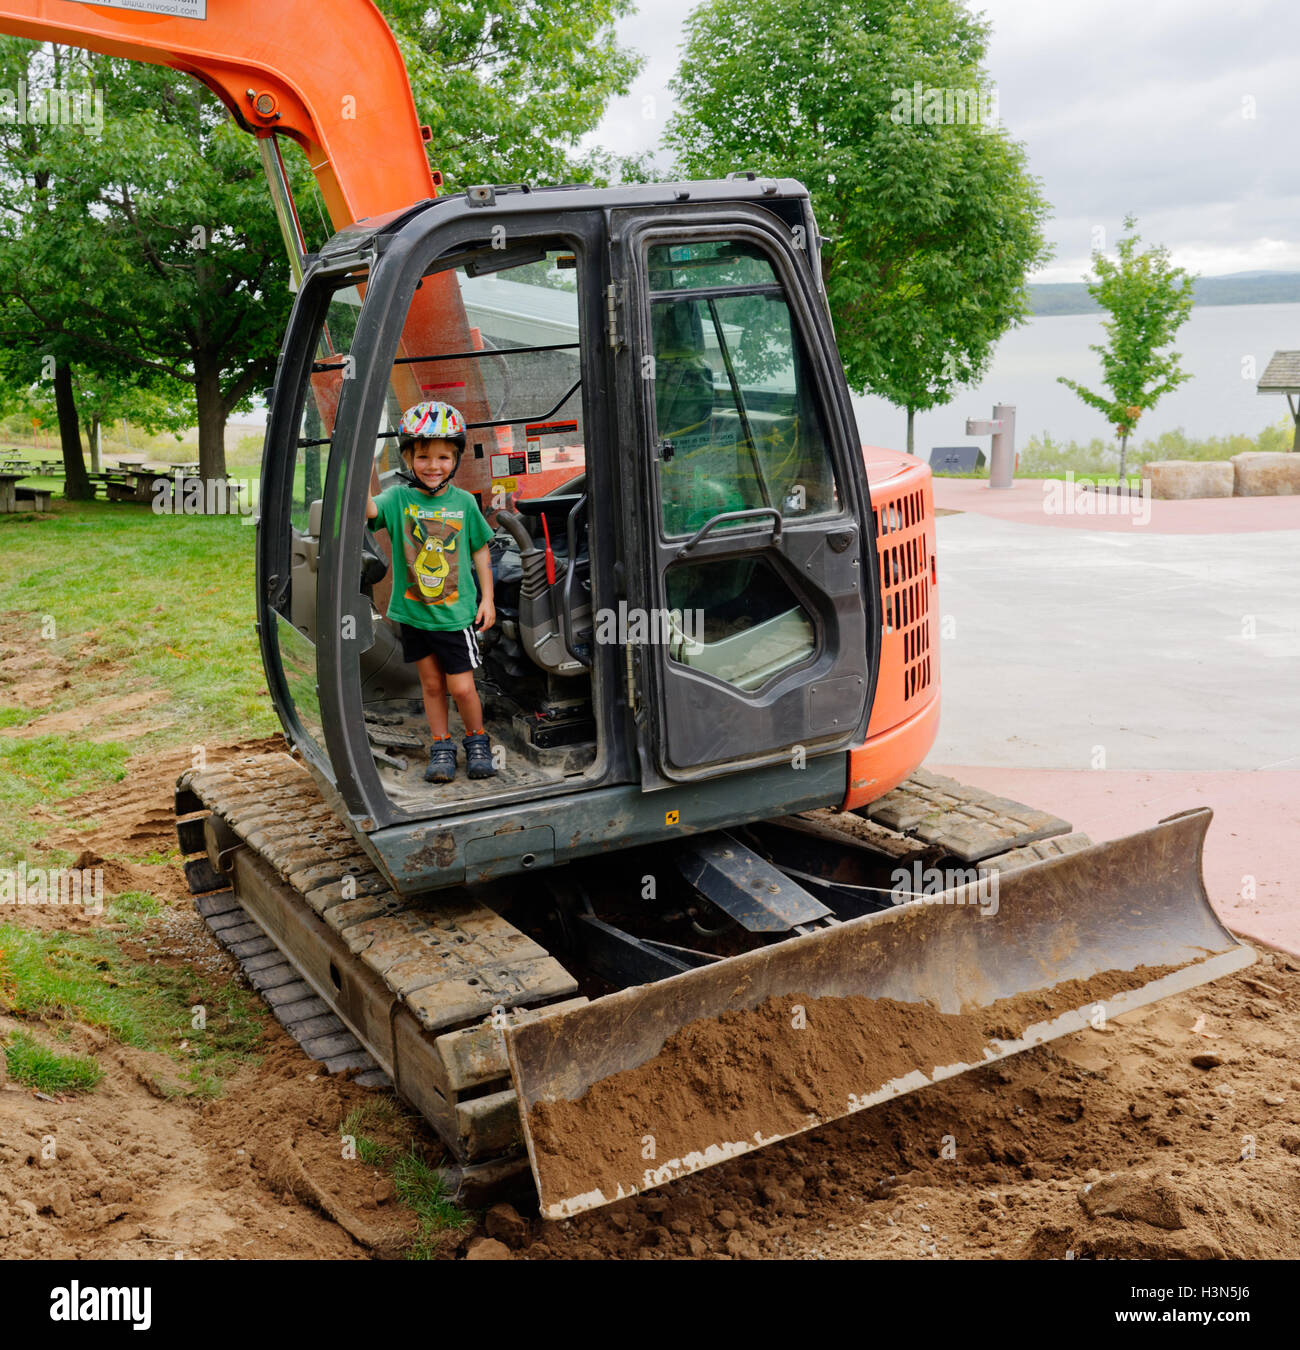 A Young Boy 4 Yrs Old Sitting A Jcb Excavator Cabin Pretending To Stock Photo Alamy